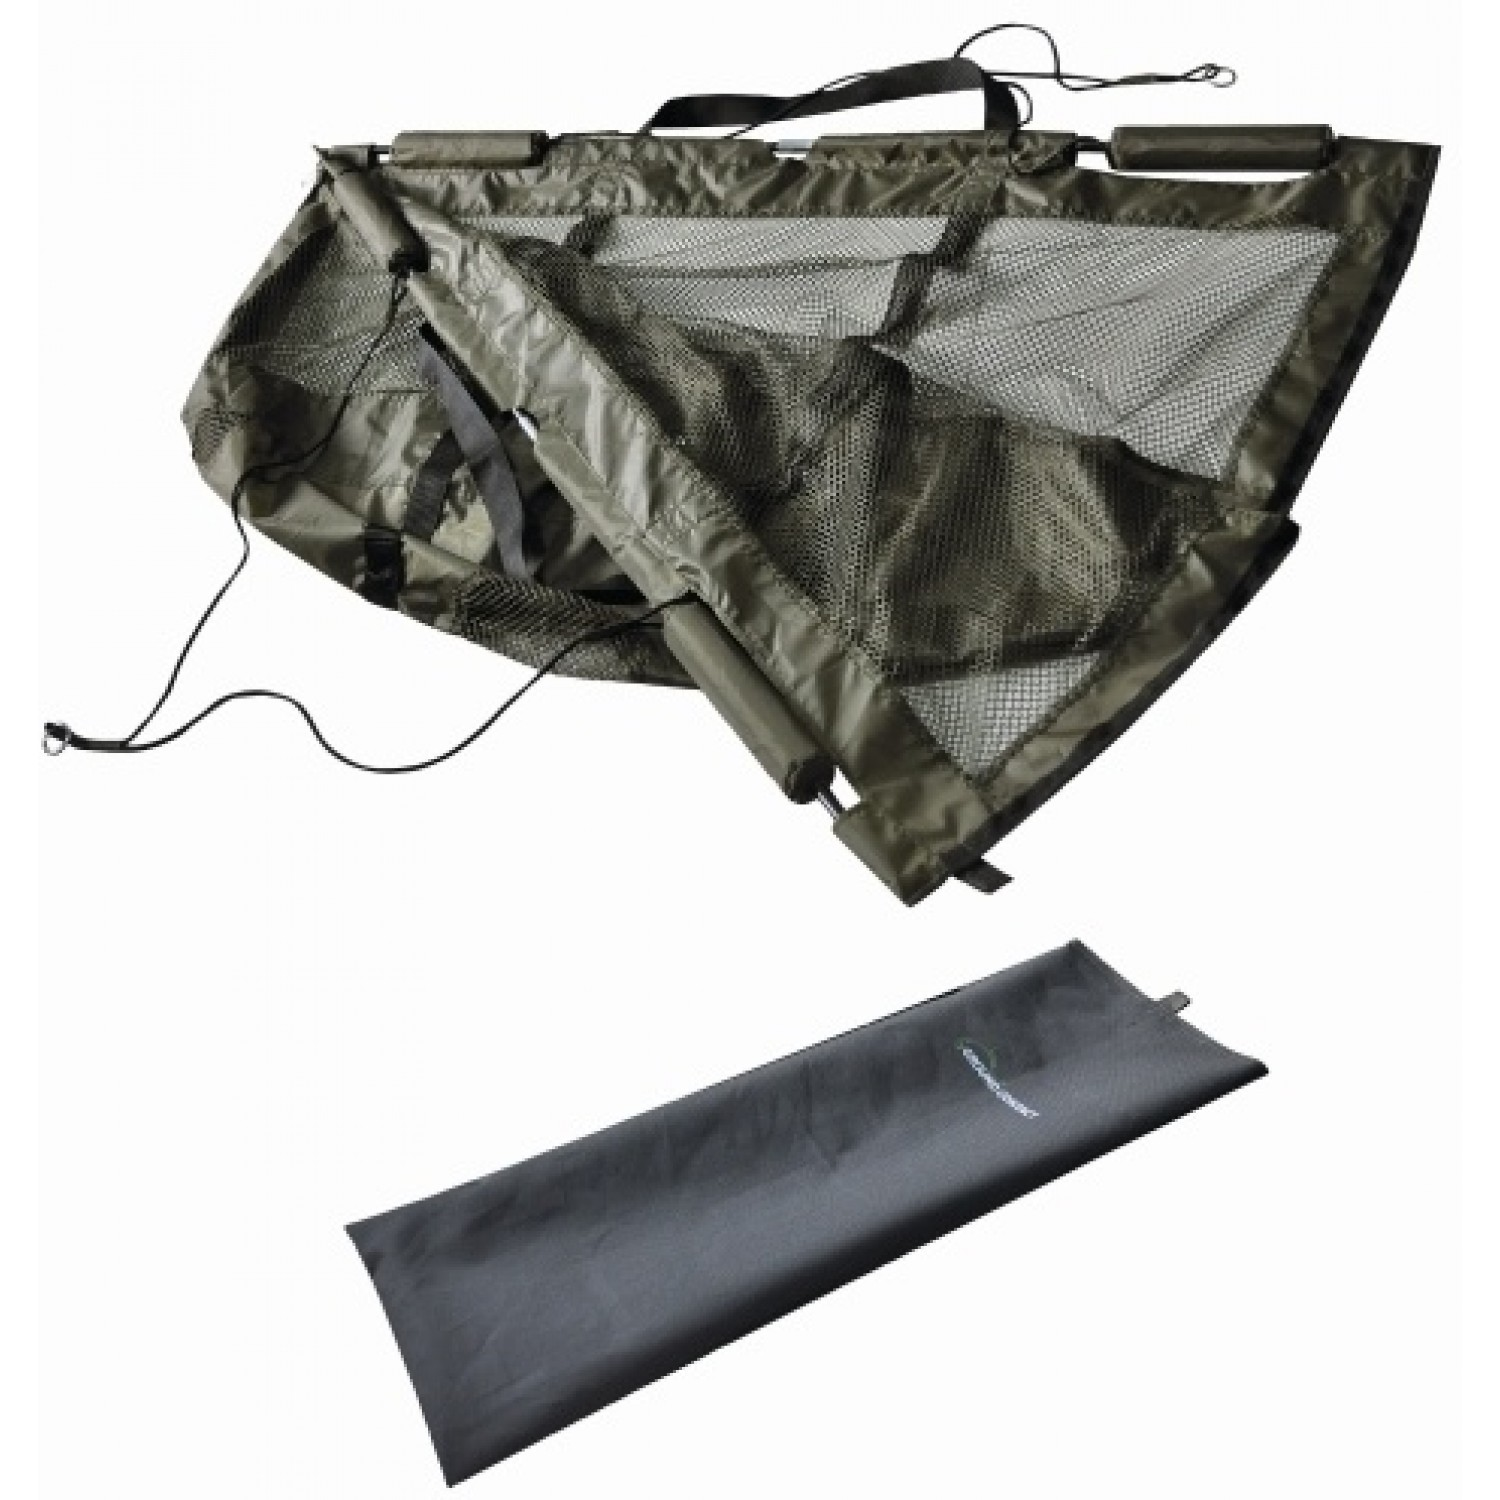 Jenzi Ground Contact Carp Safety Weigh Sling Deluxe